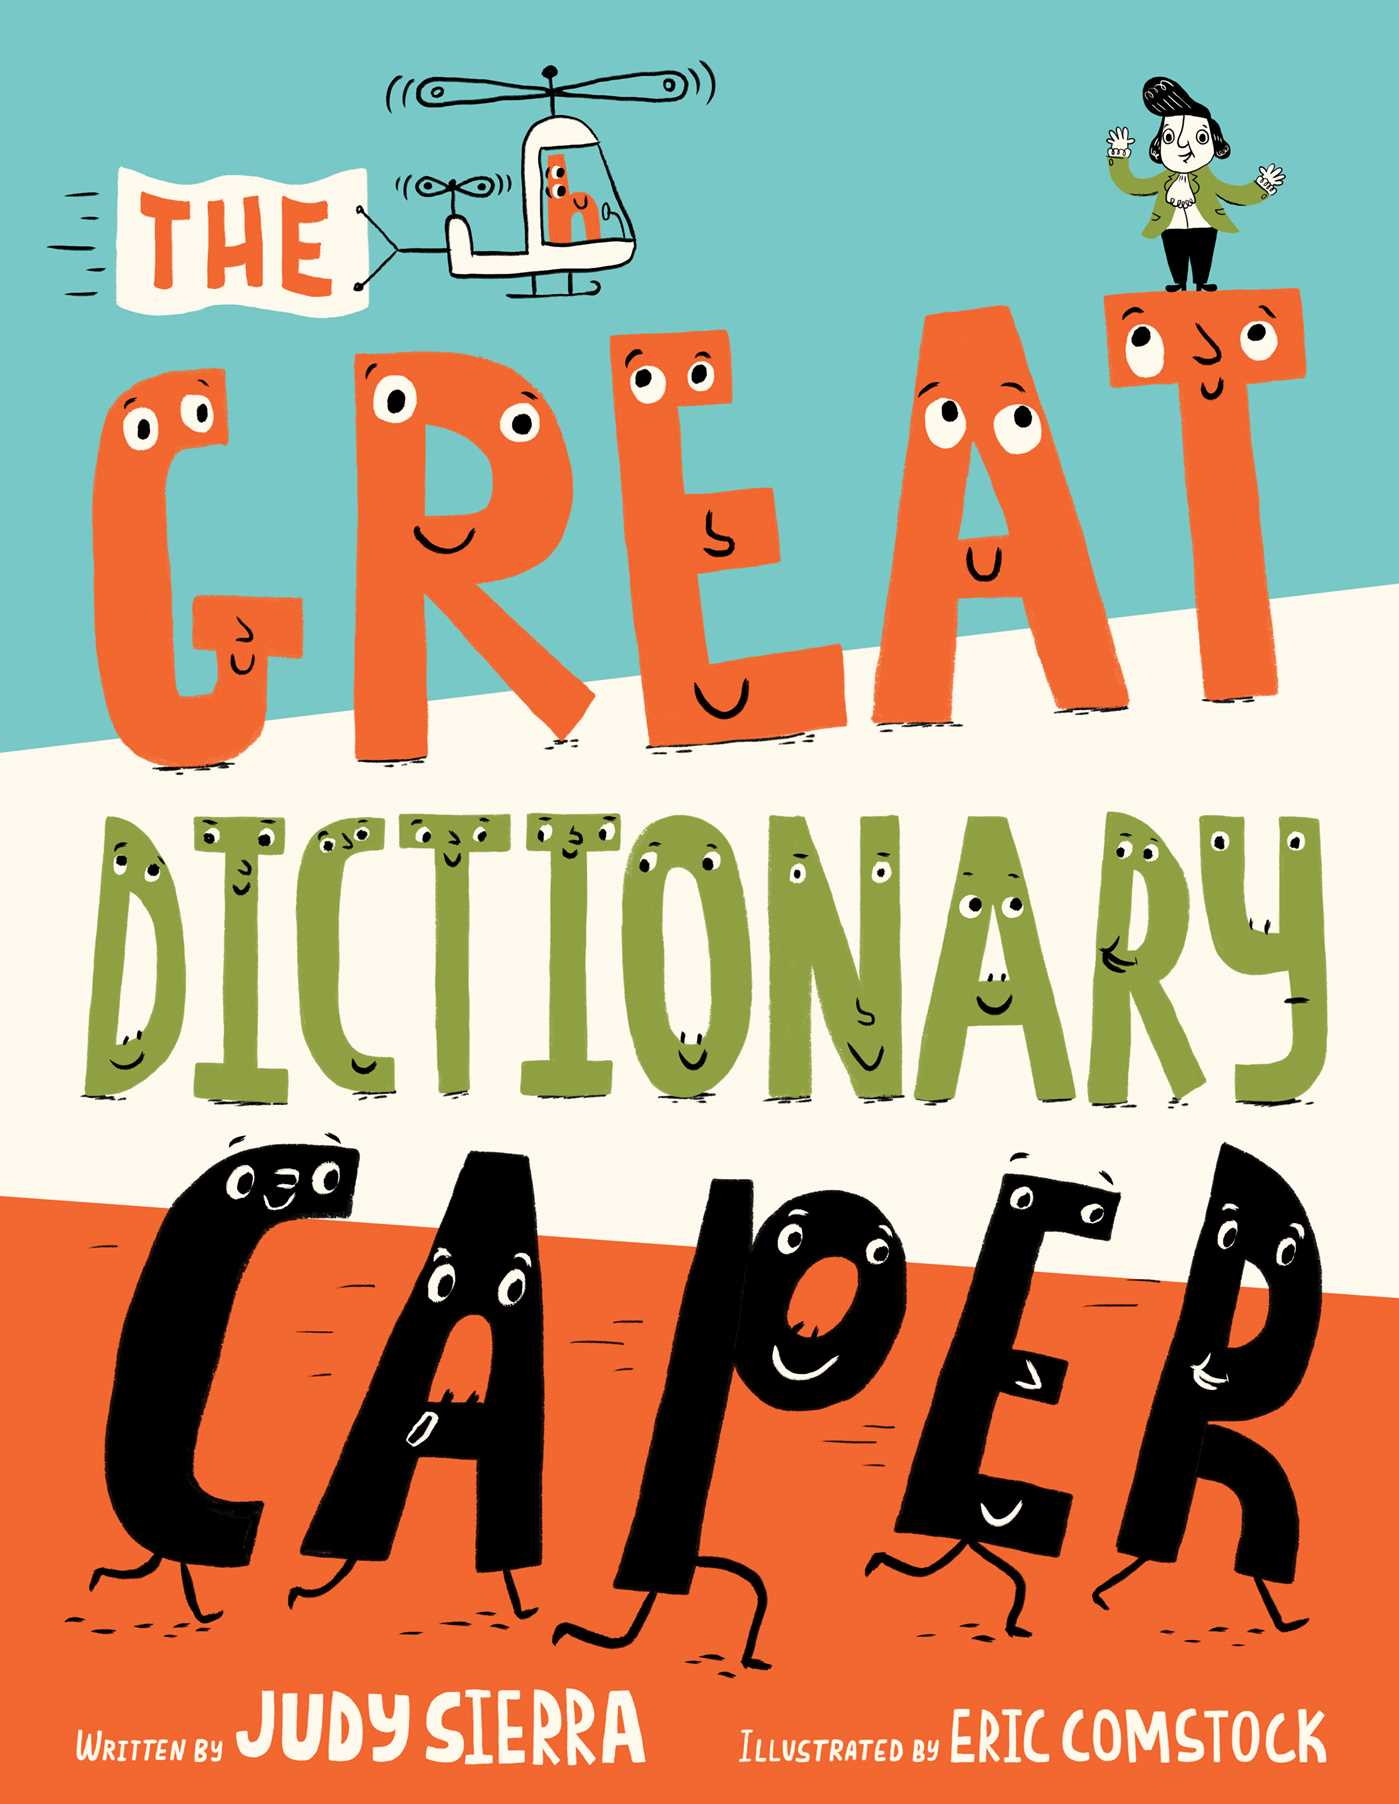 The great dictionary caper 9781481480048 hr